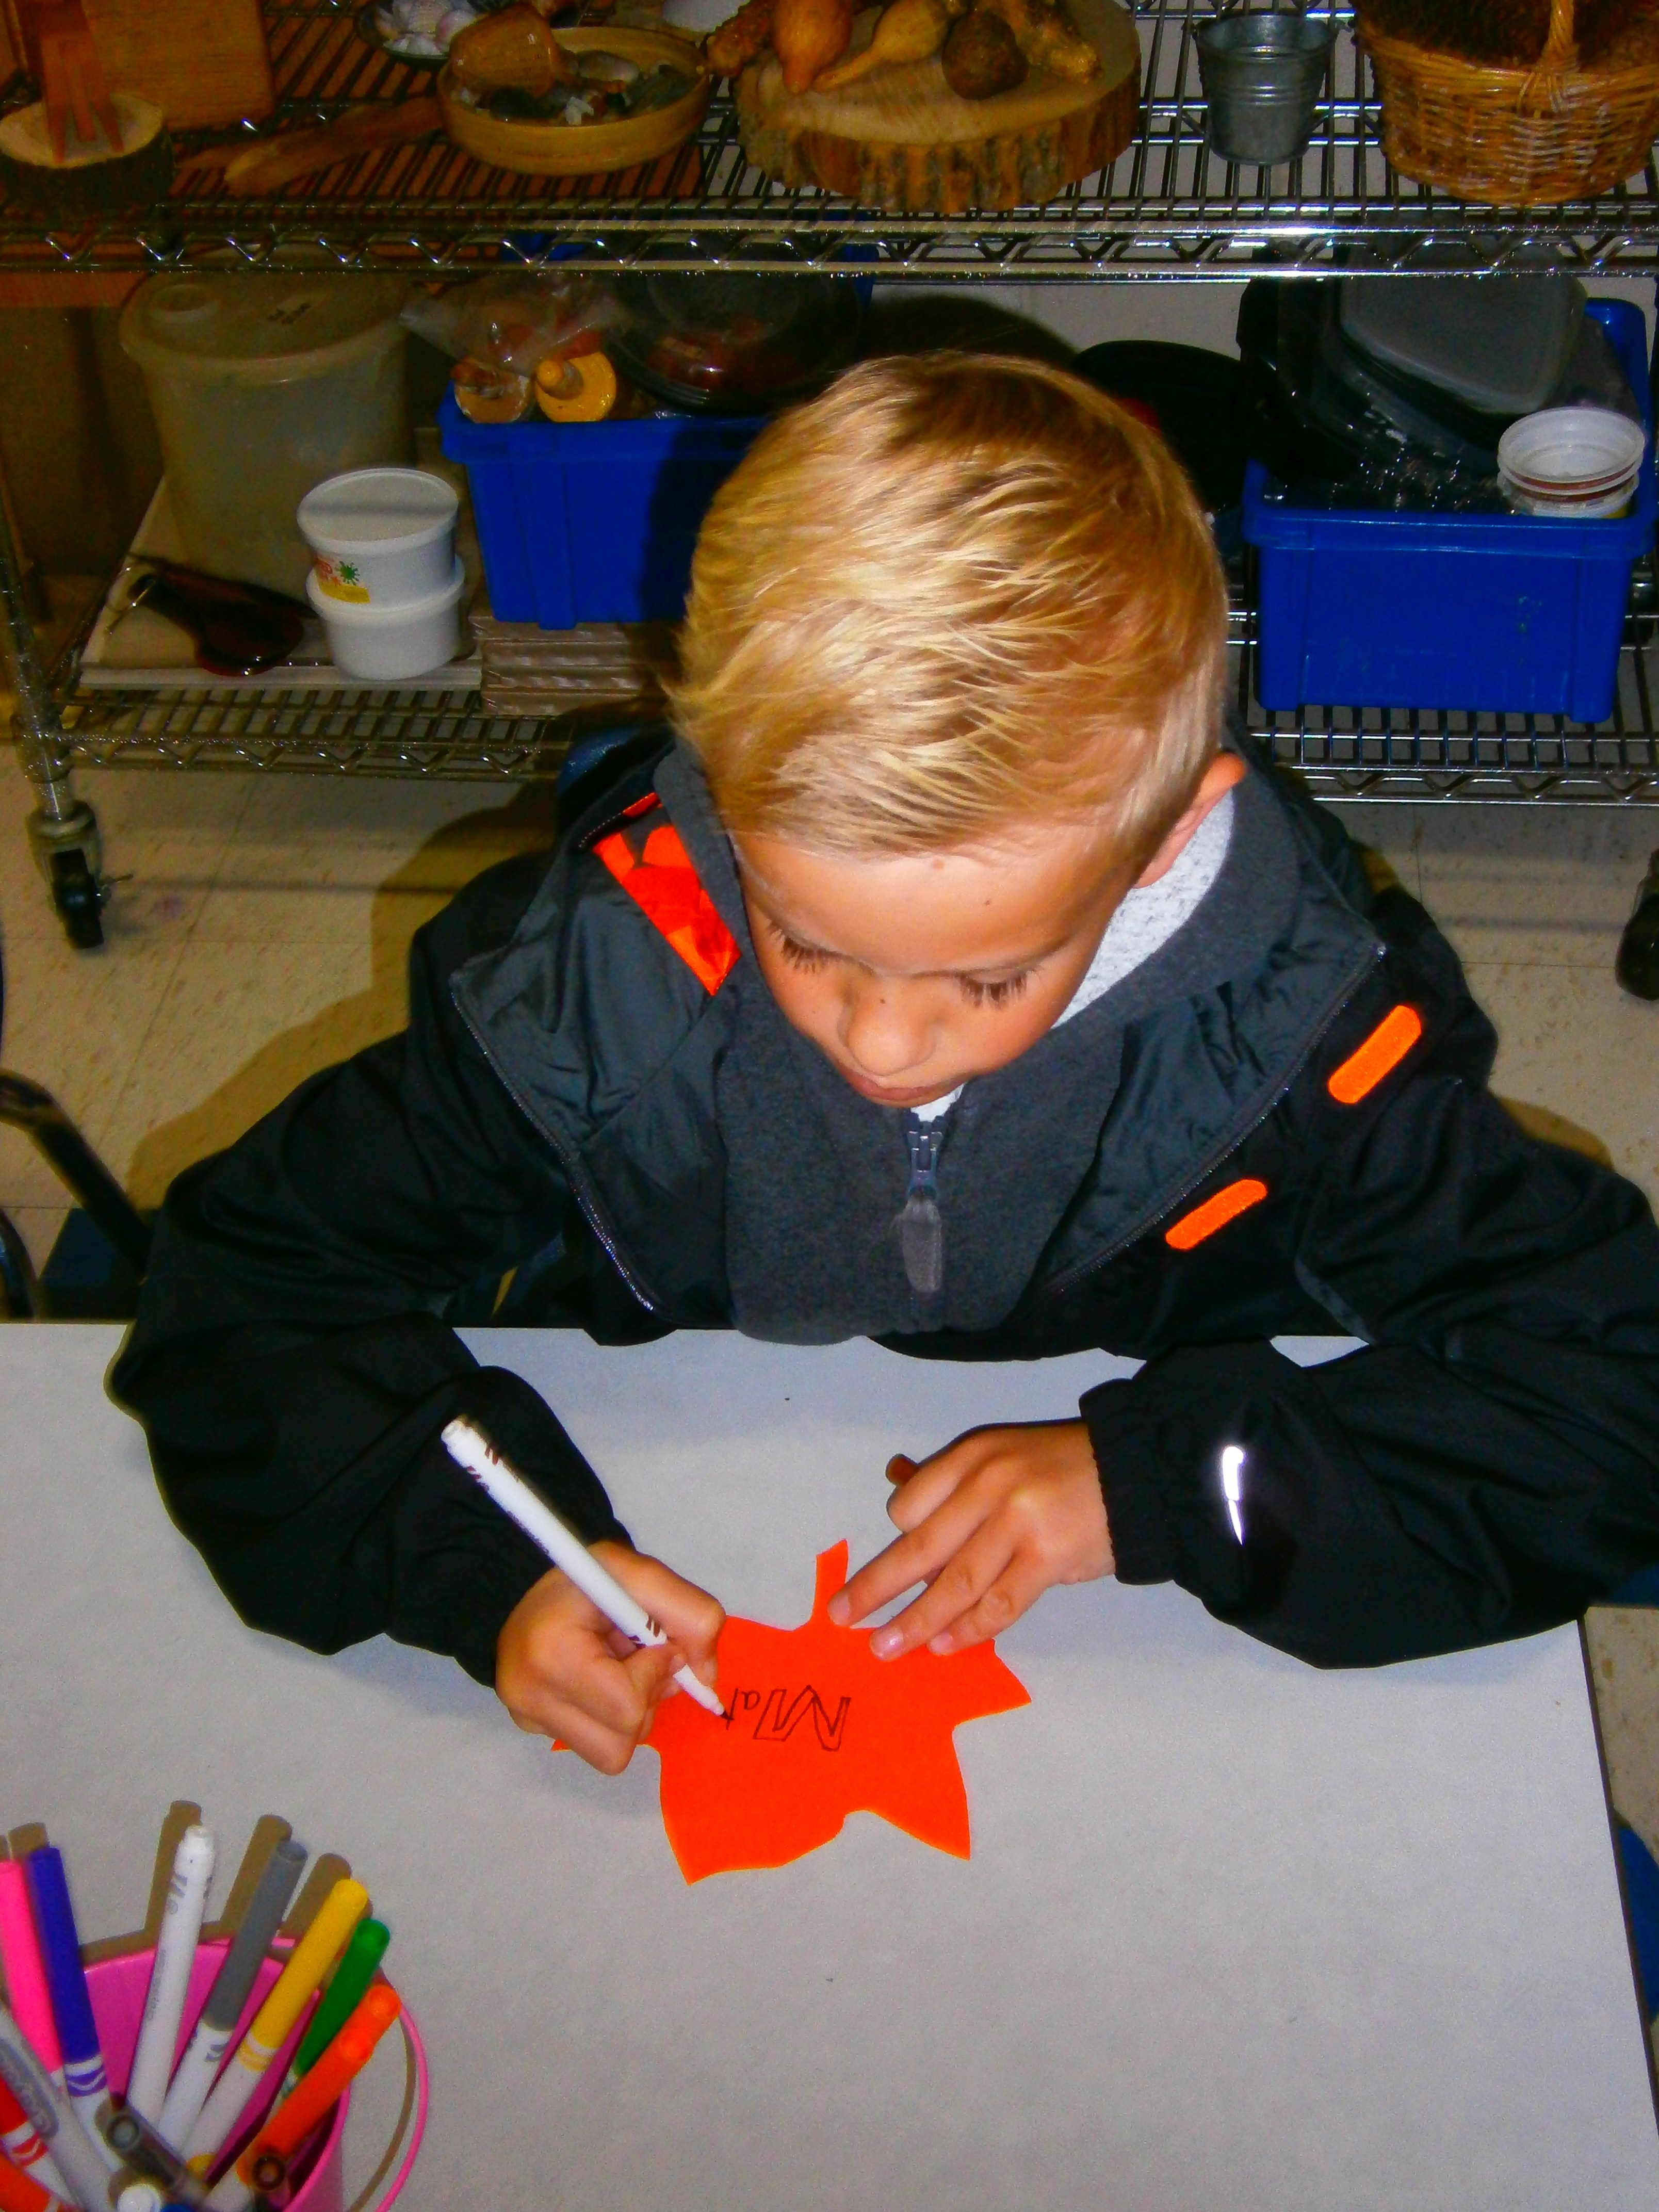 Making a leaf for the classroom project.